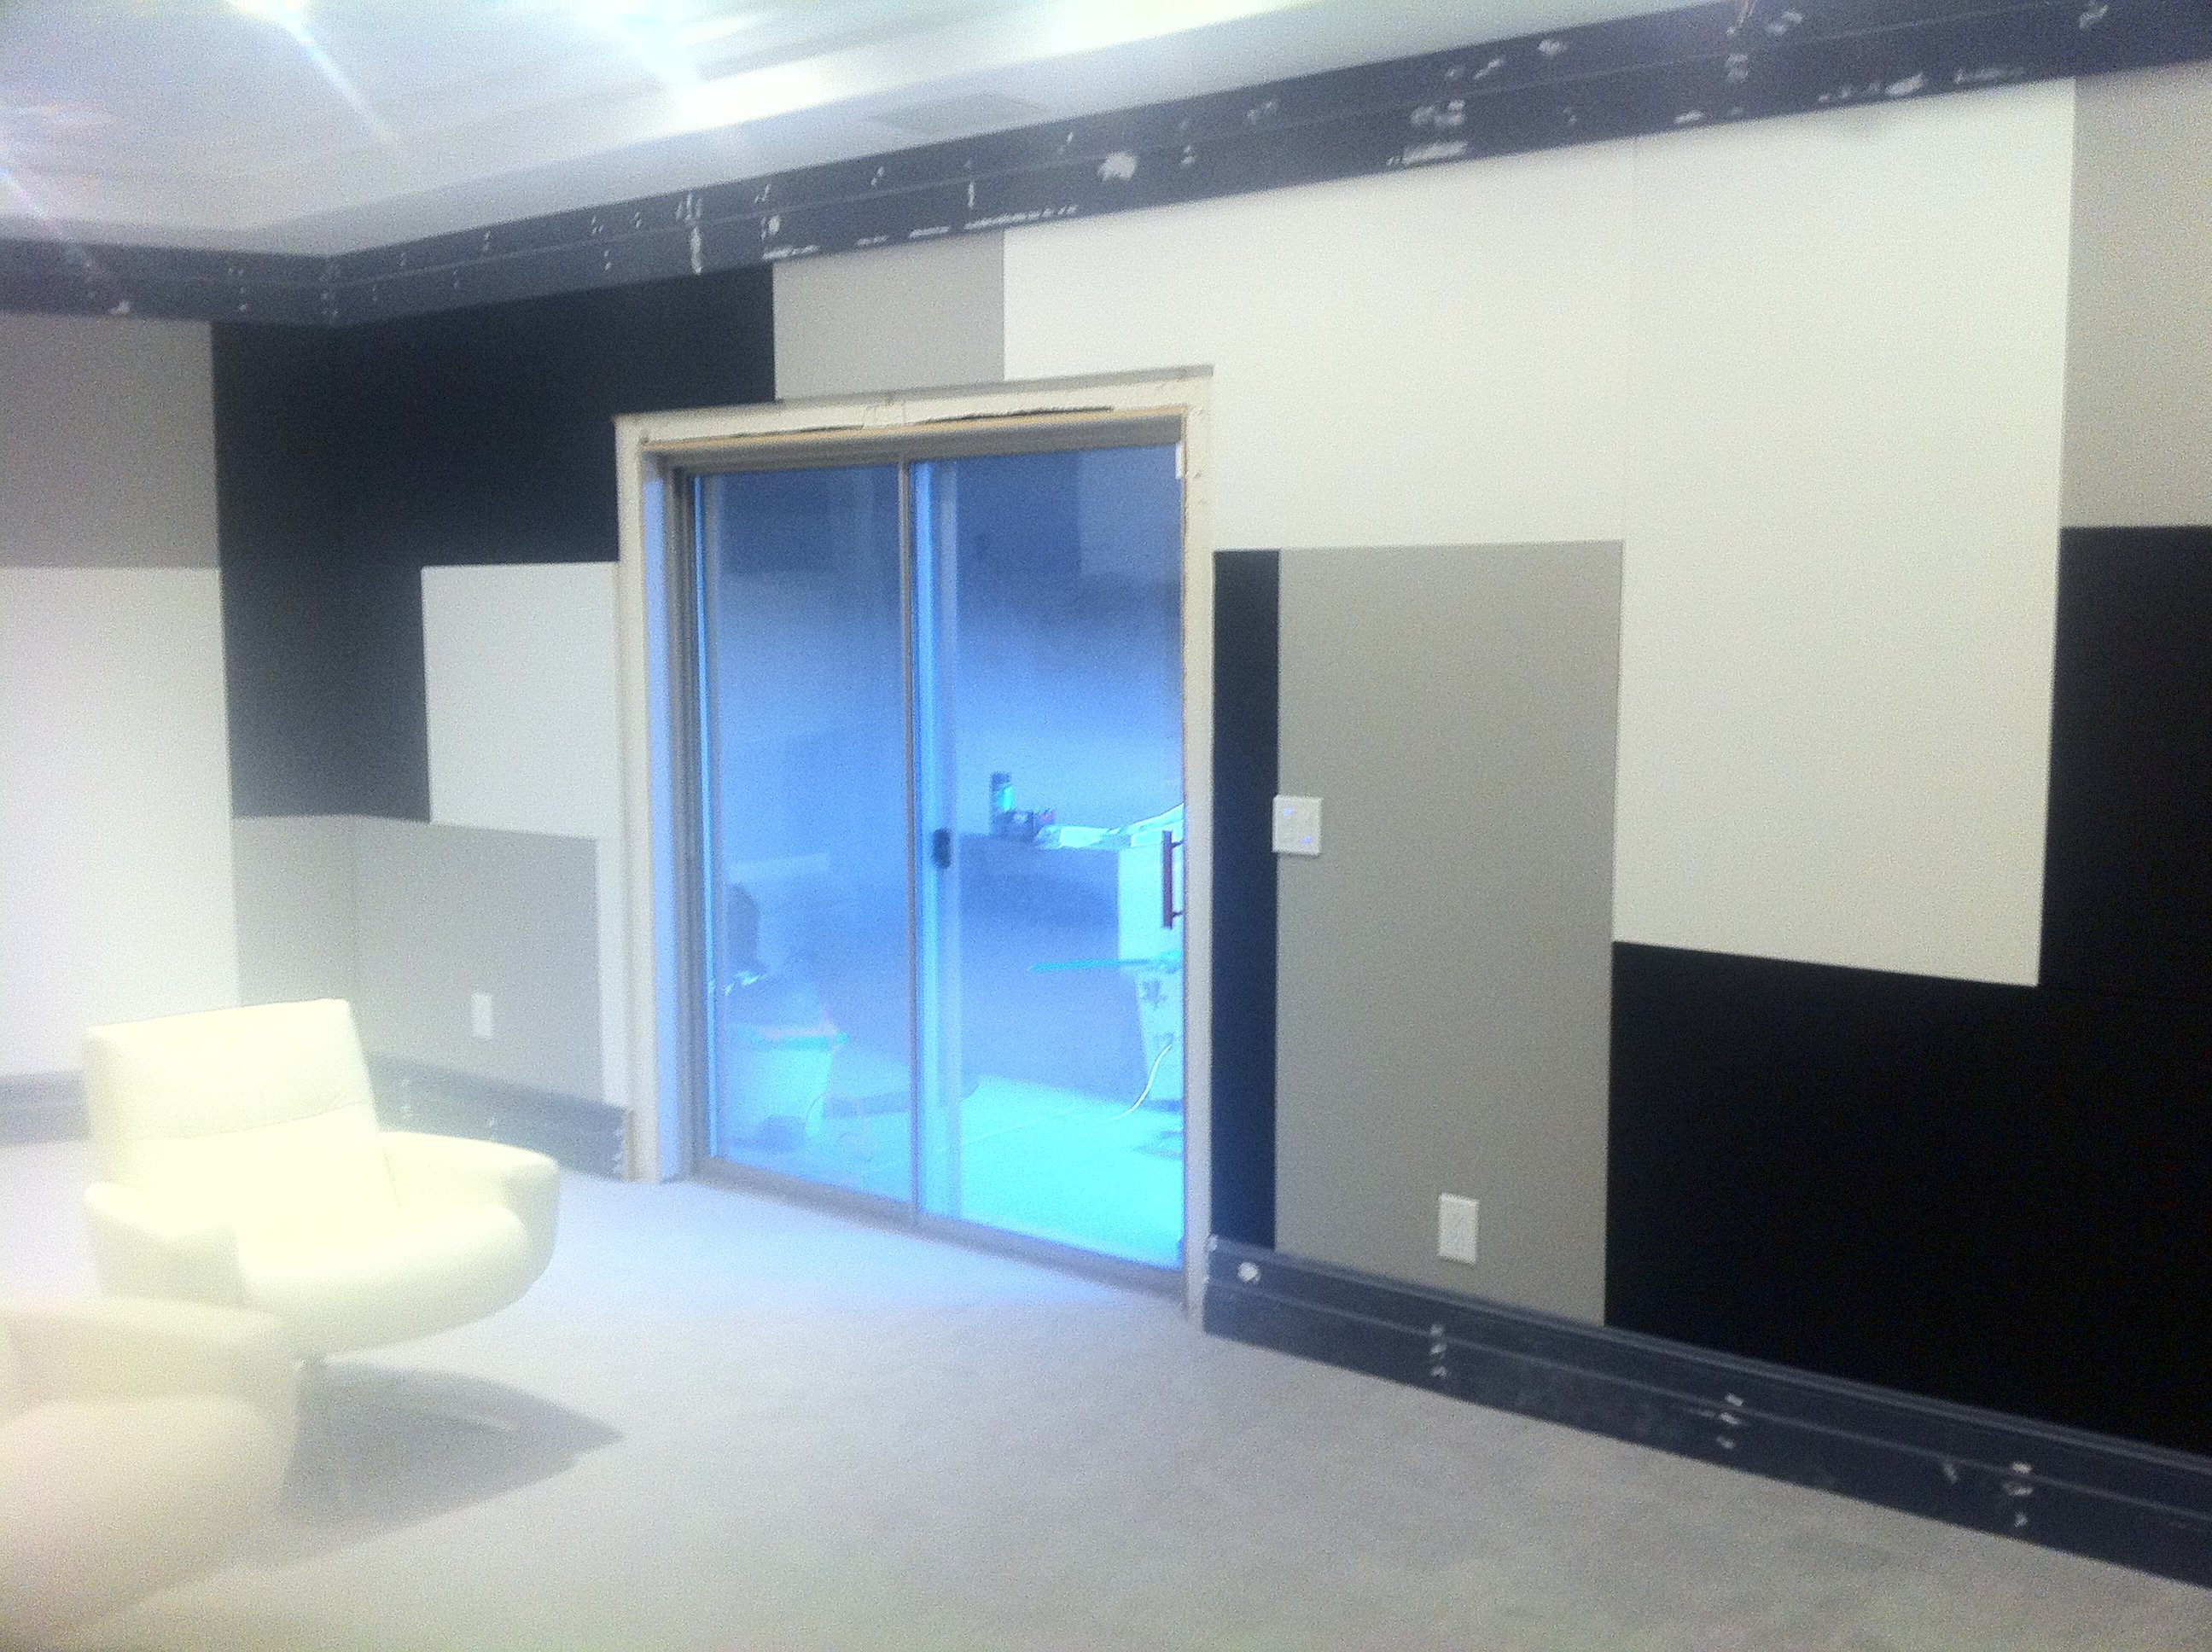 Nice How To Cover/conceal Sliding Glass Door To Home Theater   AVS Forum | Home  Theater Discussions And Reviews